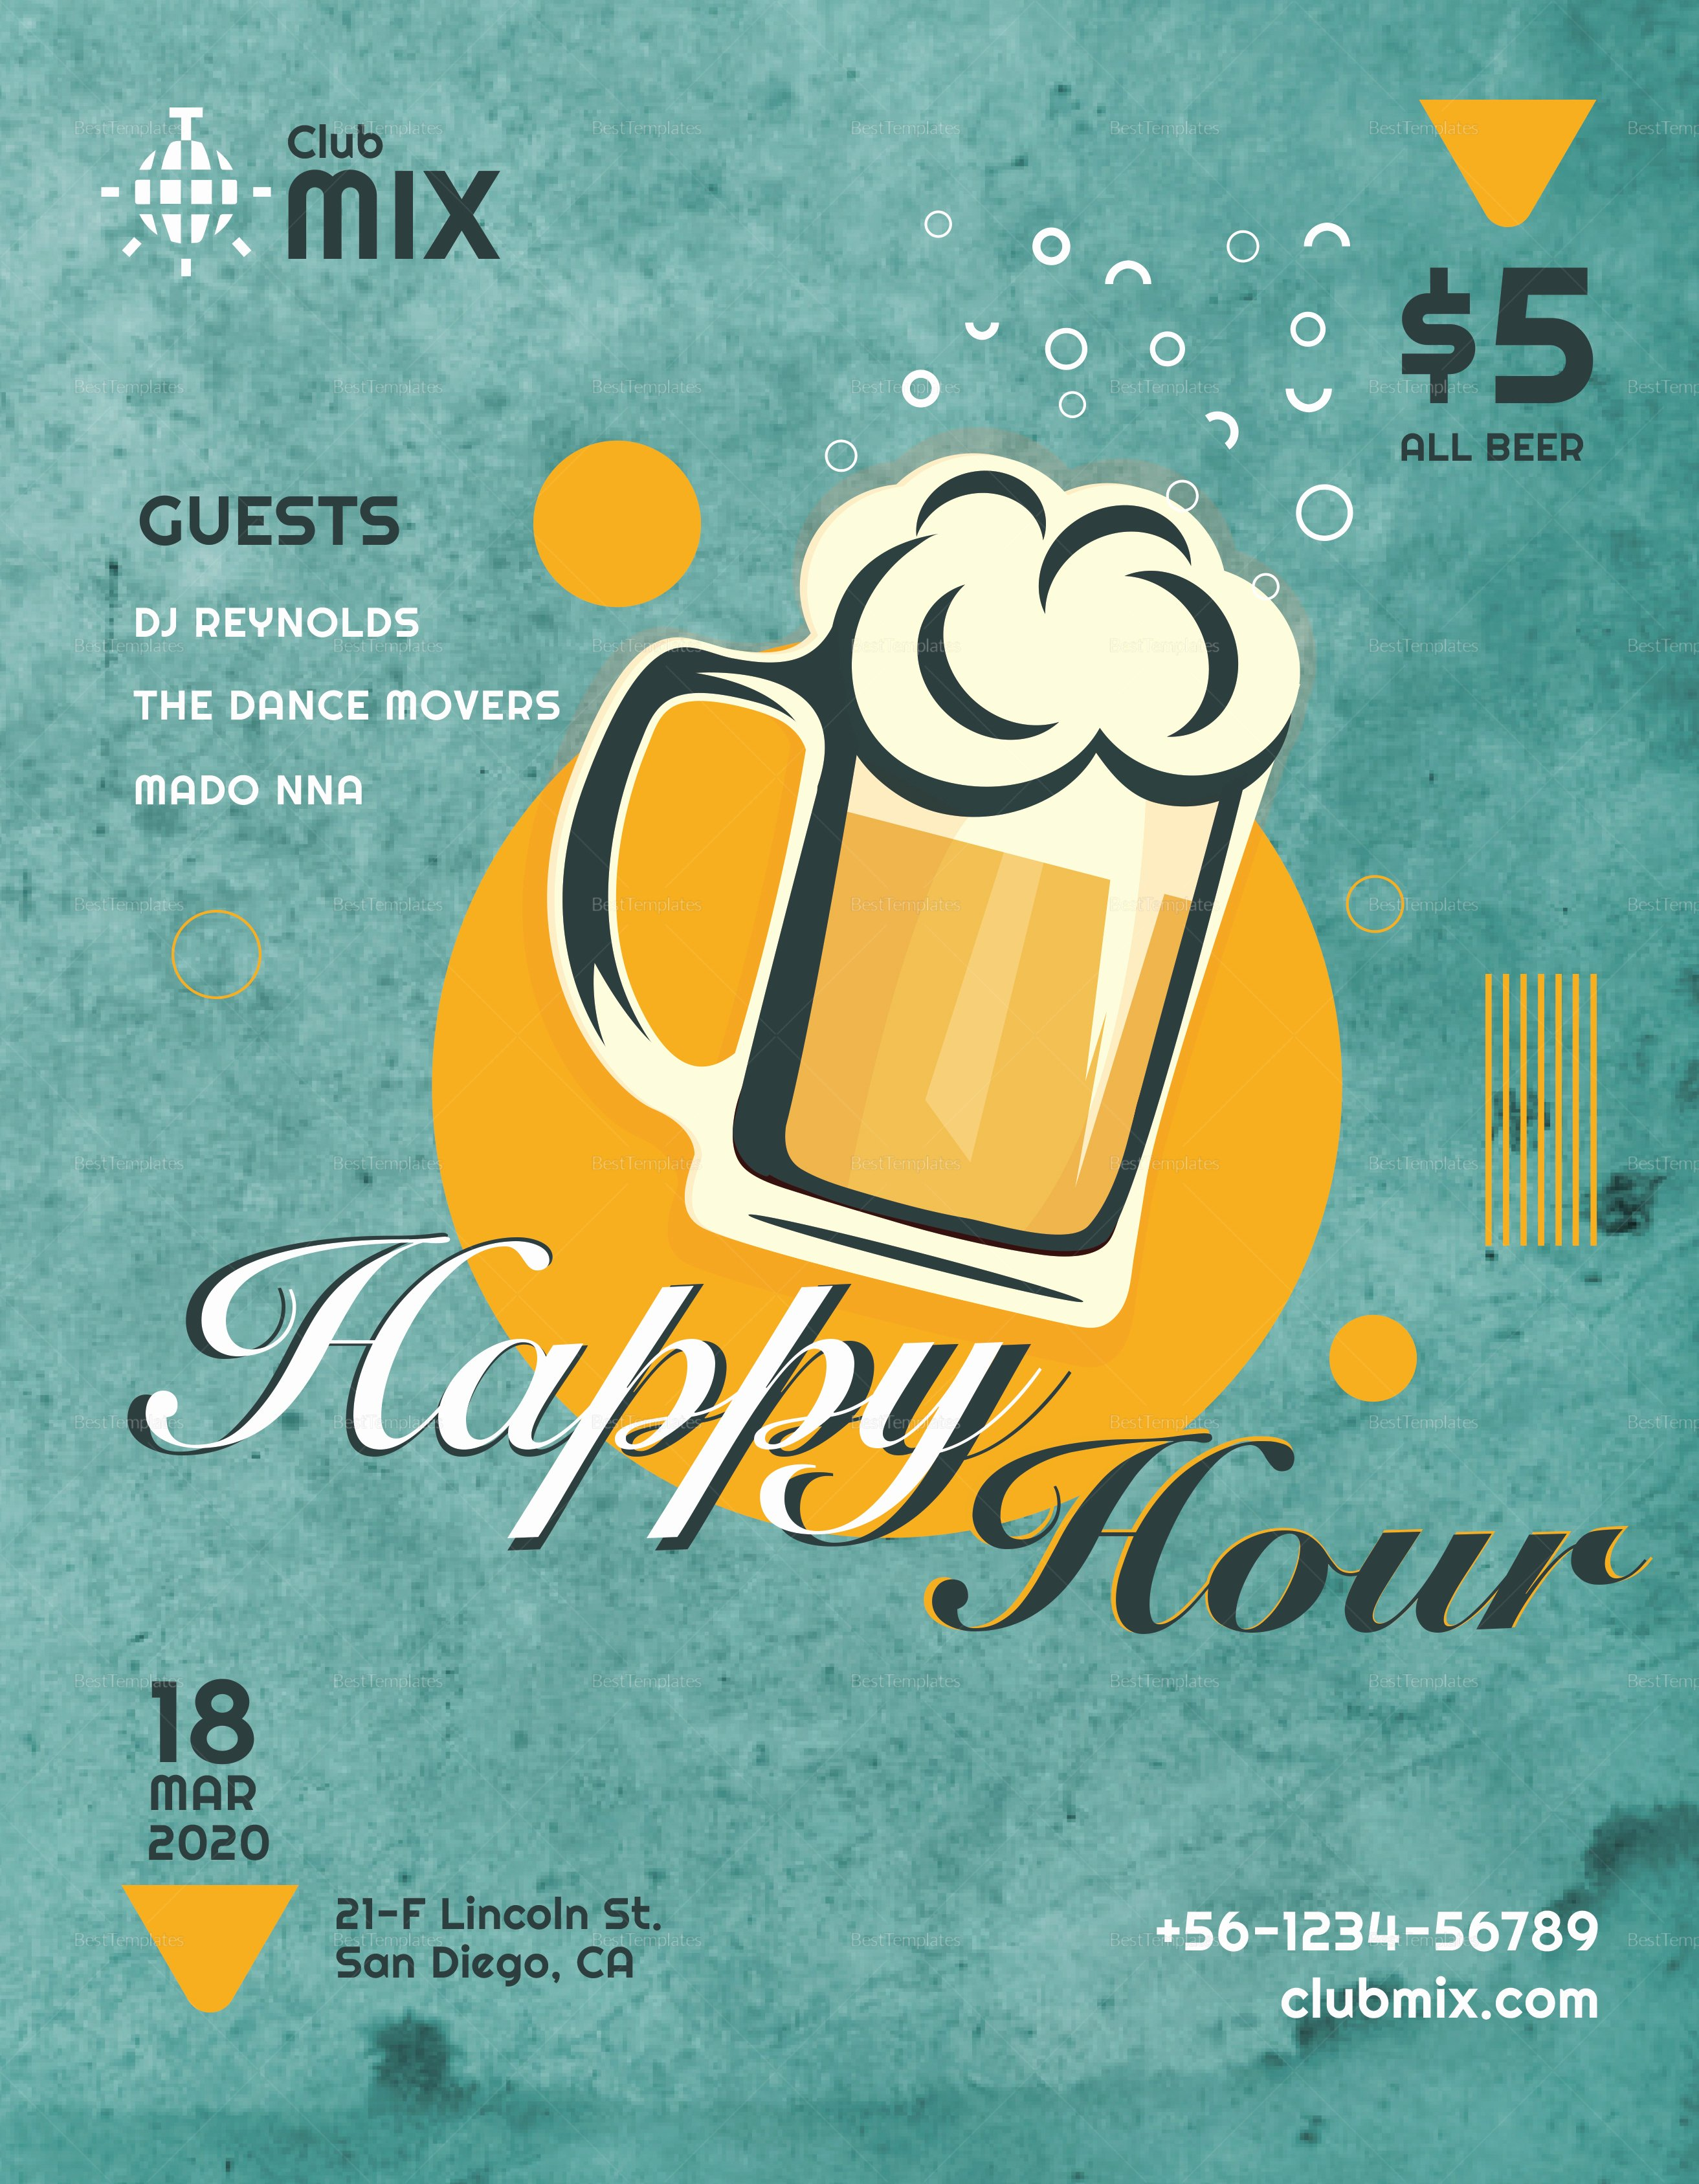 Happy Hour Flyer Templates Free Beautiful Vintage Happy Hour Flyer Design Template In Psd Word